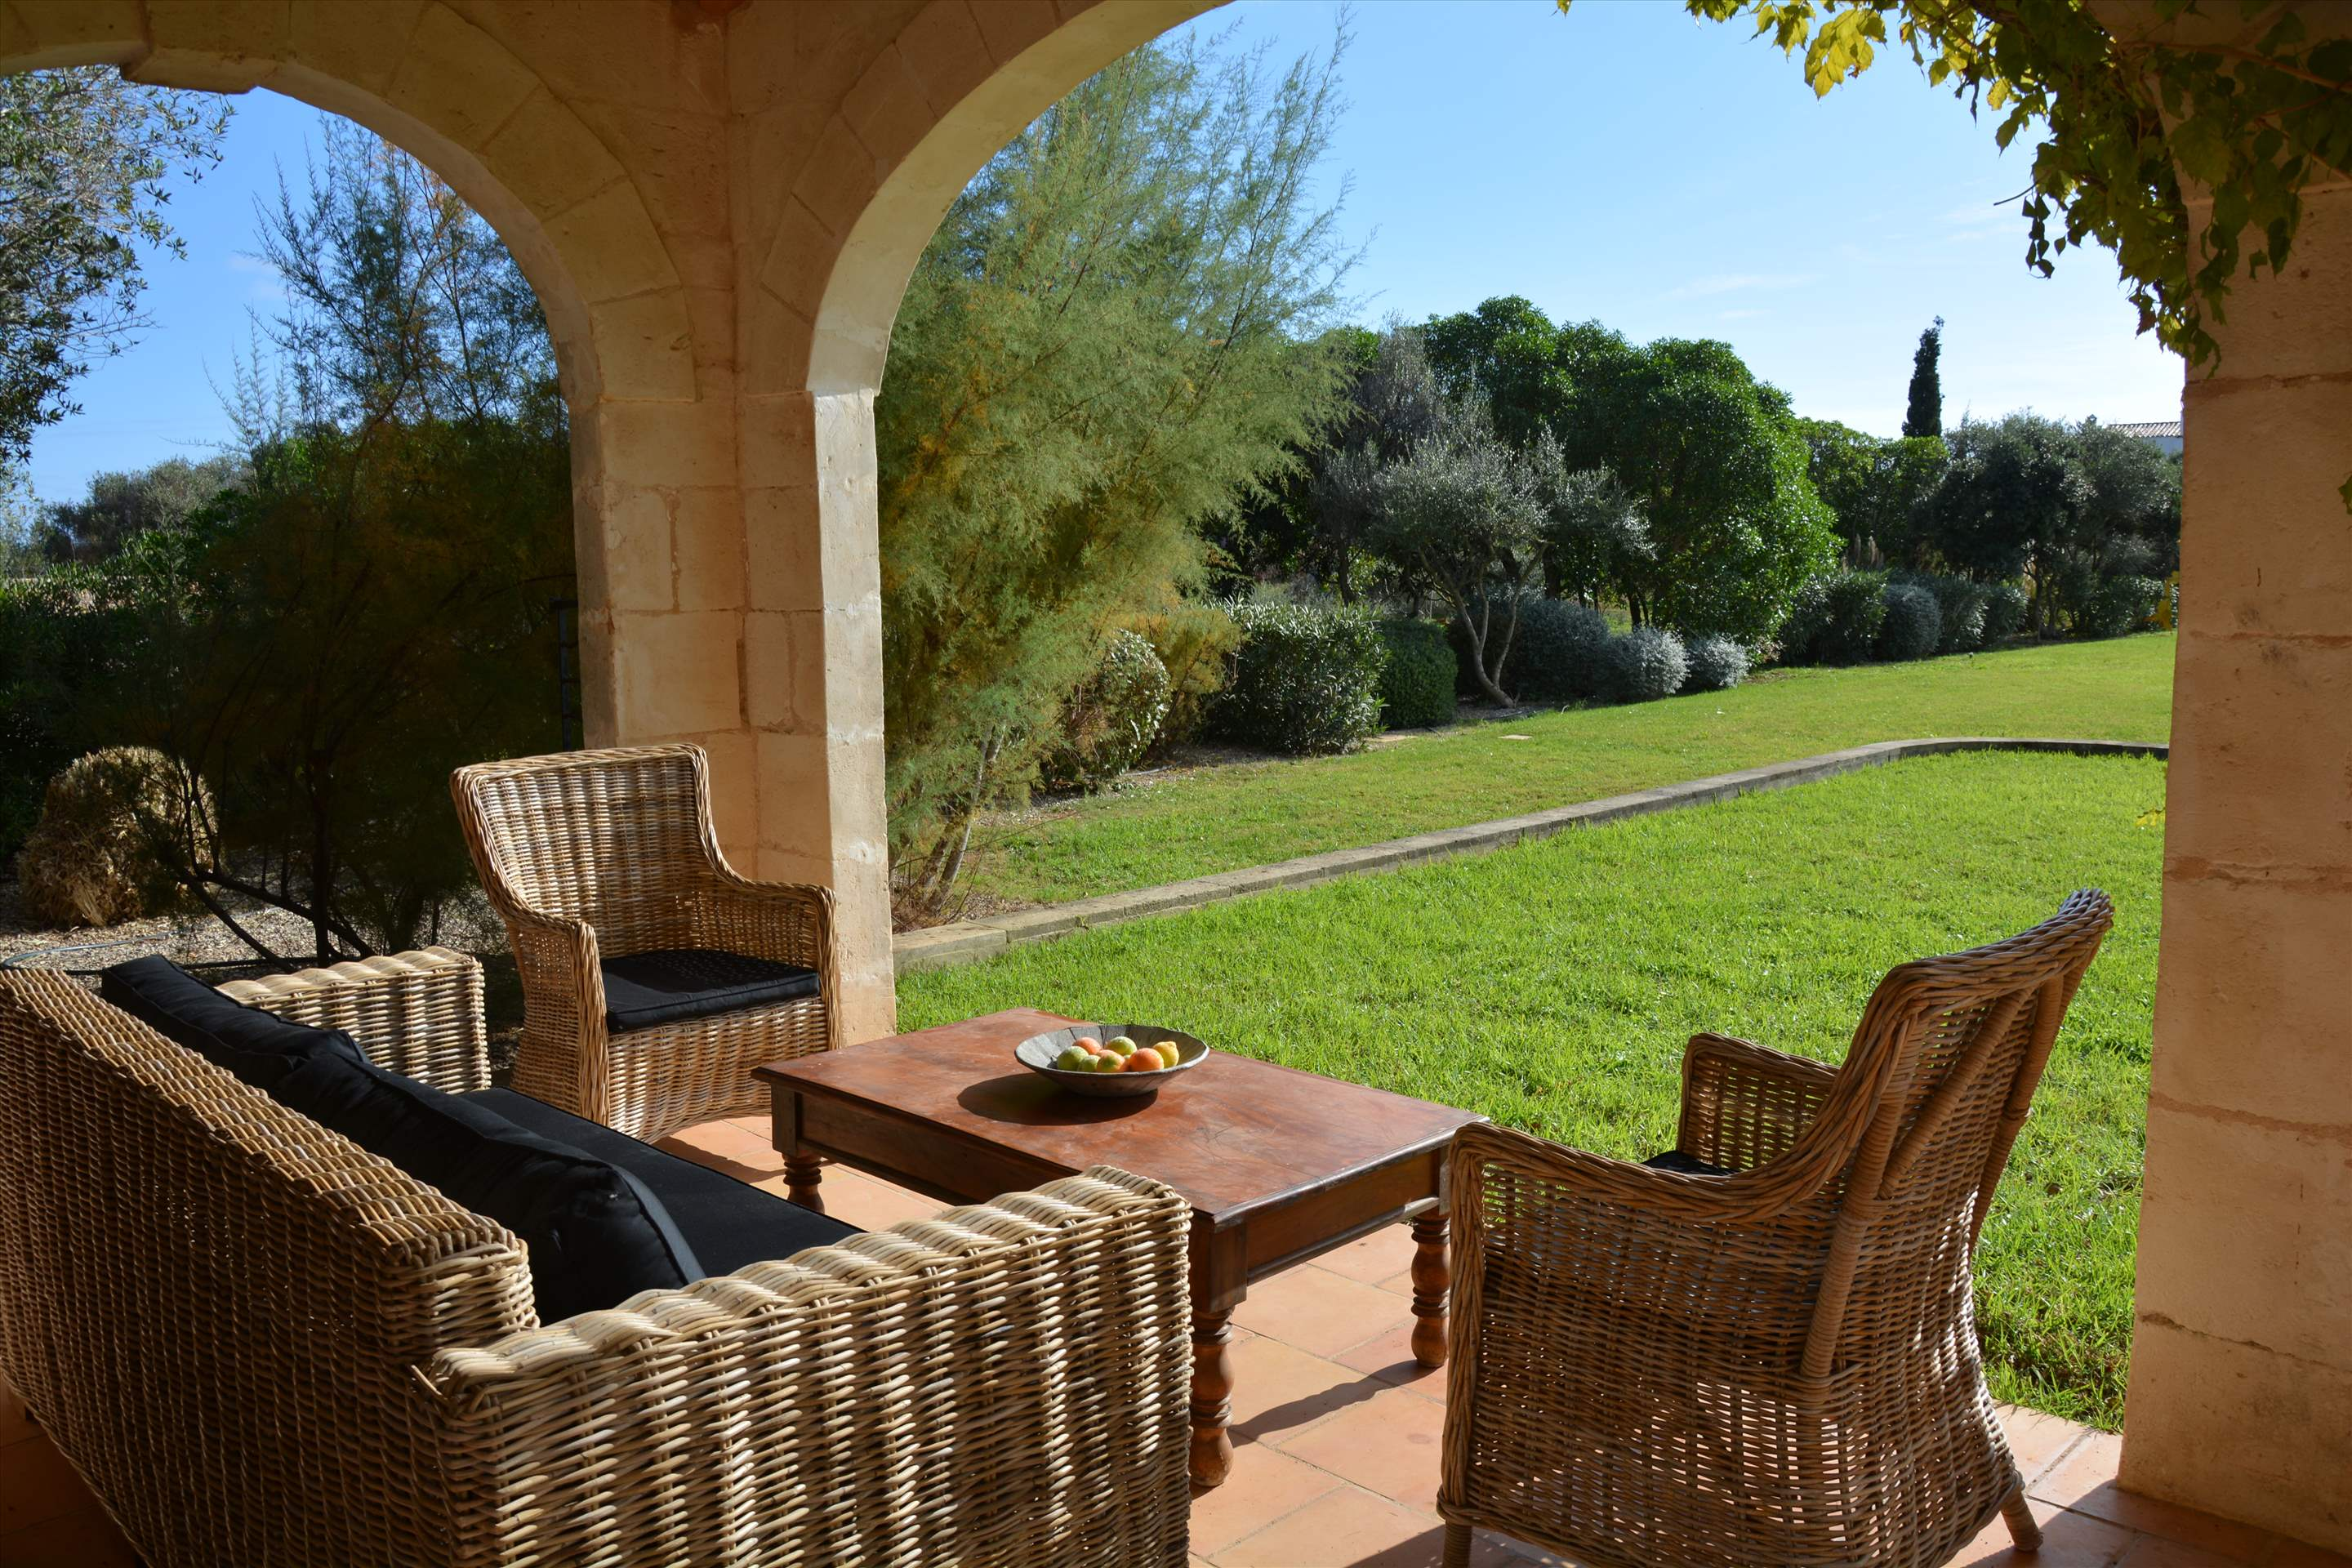 Les Arcs, 5 bedroom villa in Mahon, San Luis & South East, Menorca Photo #19